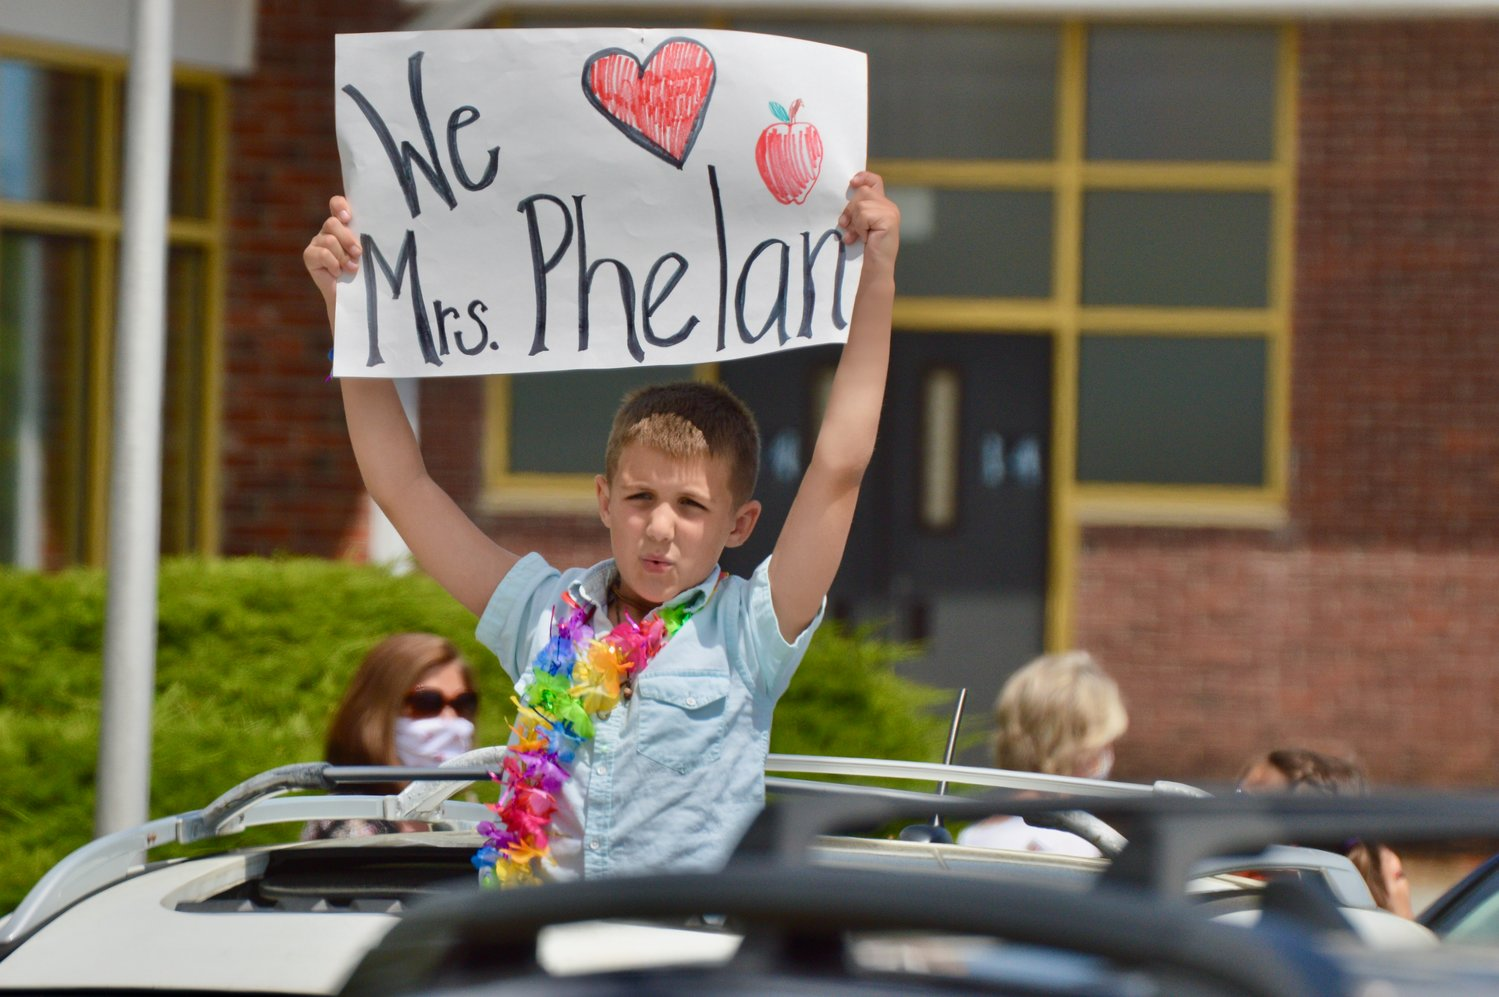 Colin Habershaw displays a special sign for his fourth-grade teacher, Alexandra Phelan.